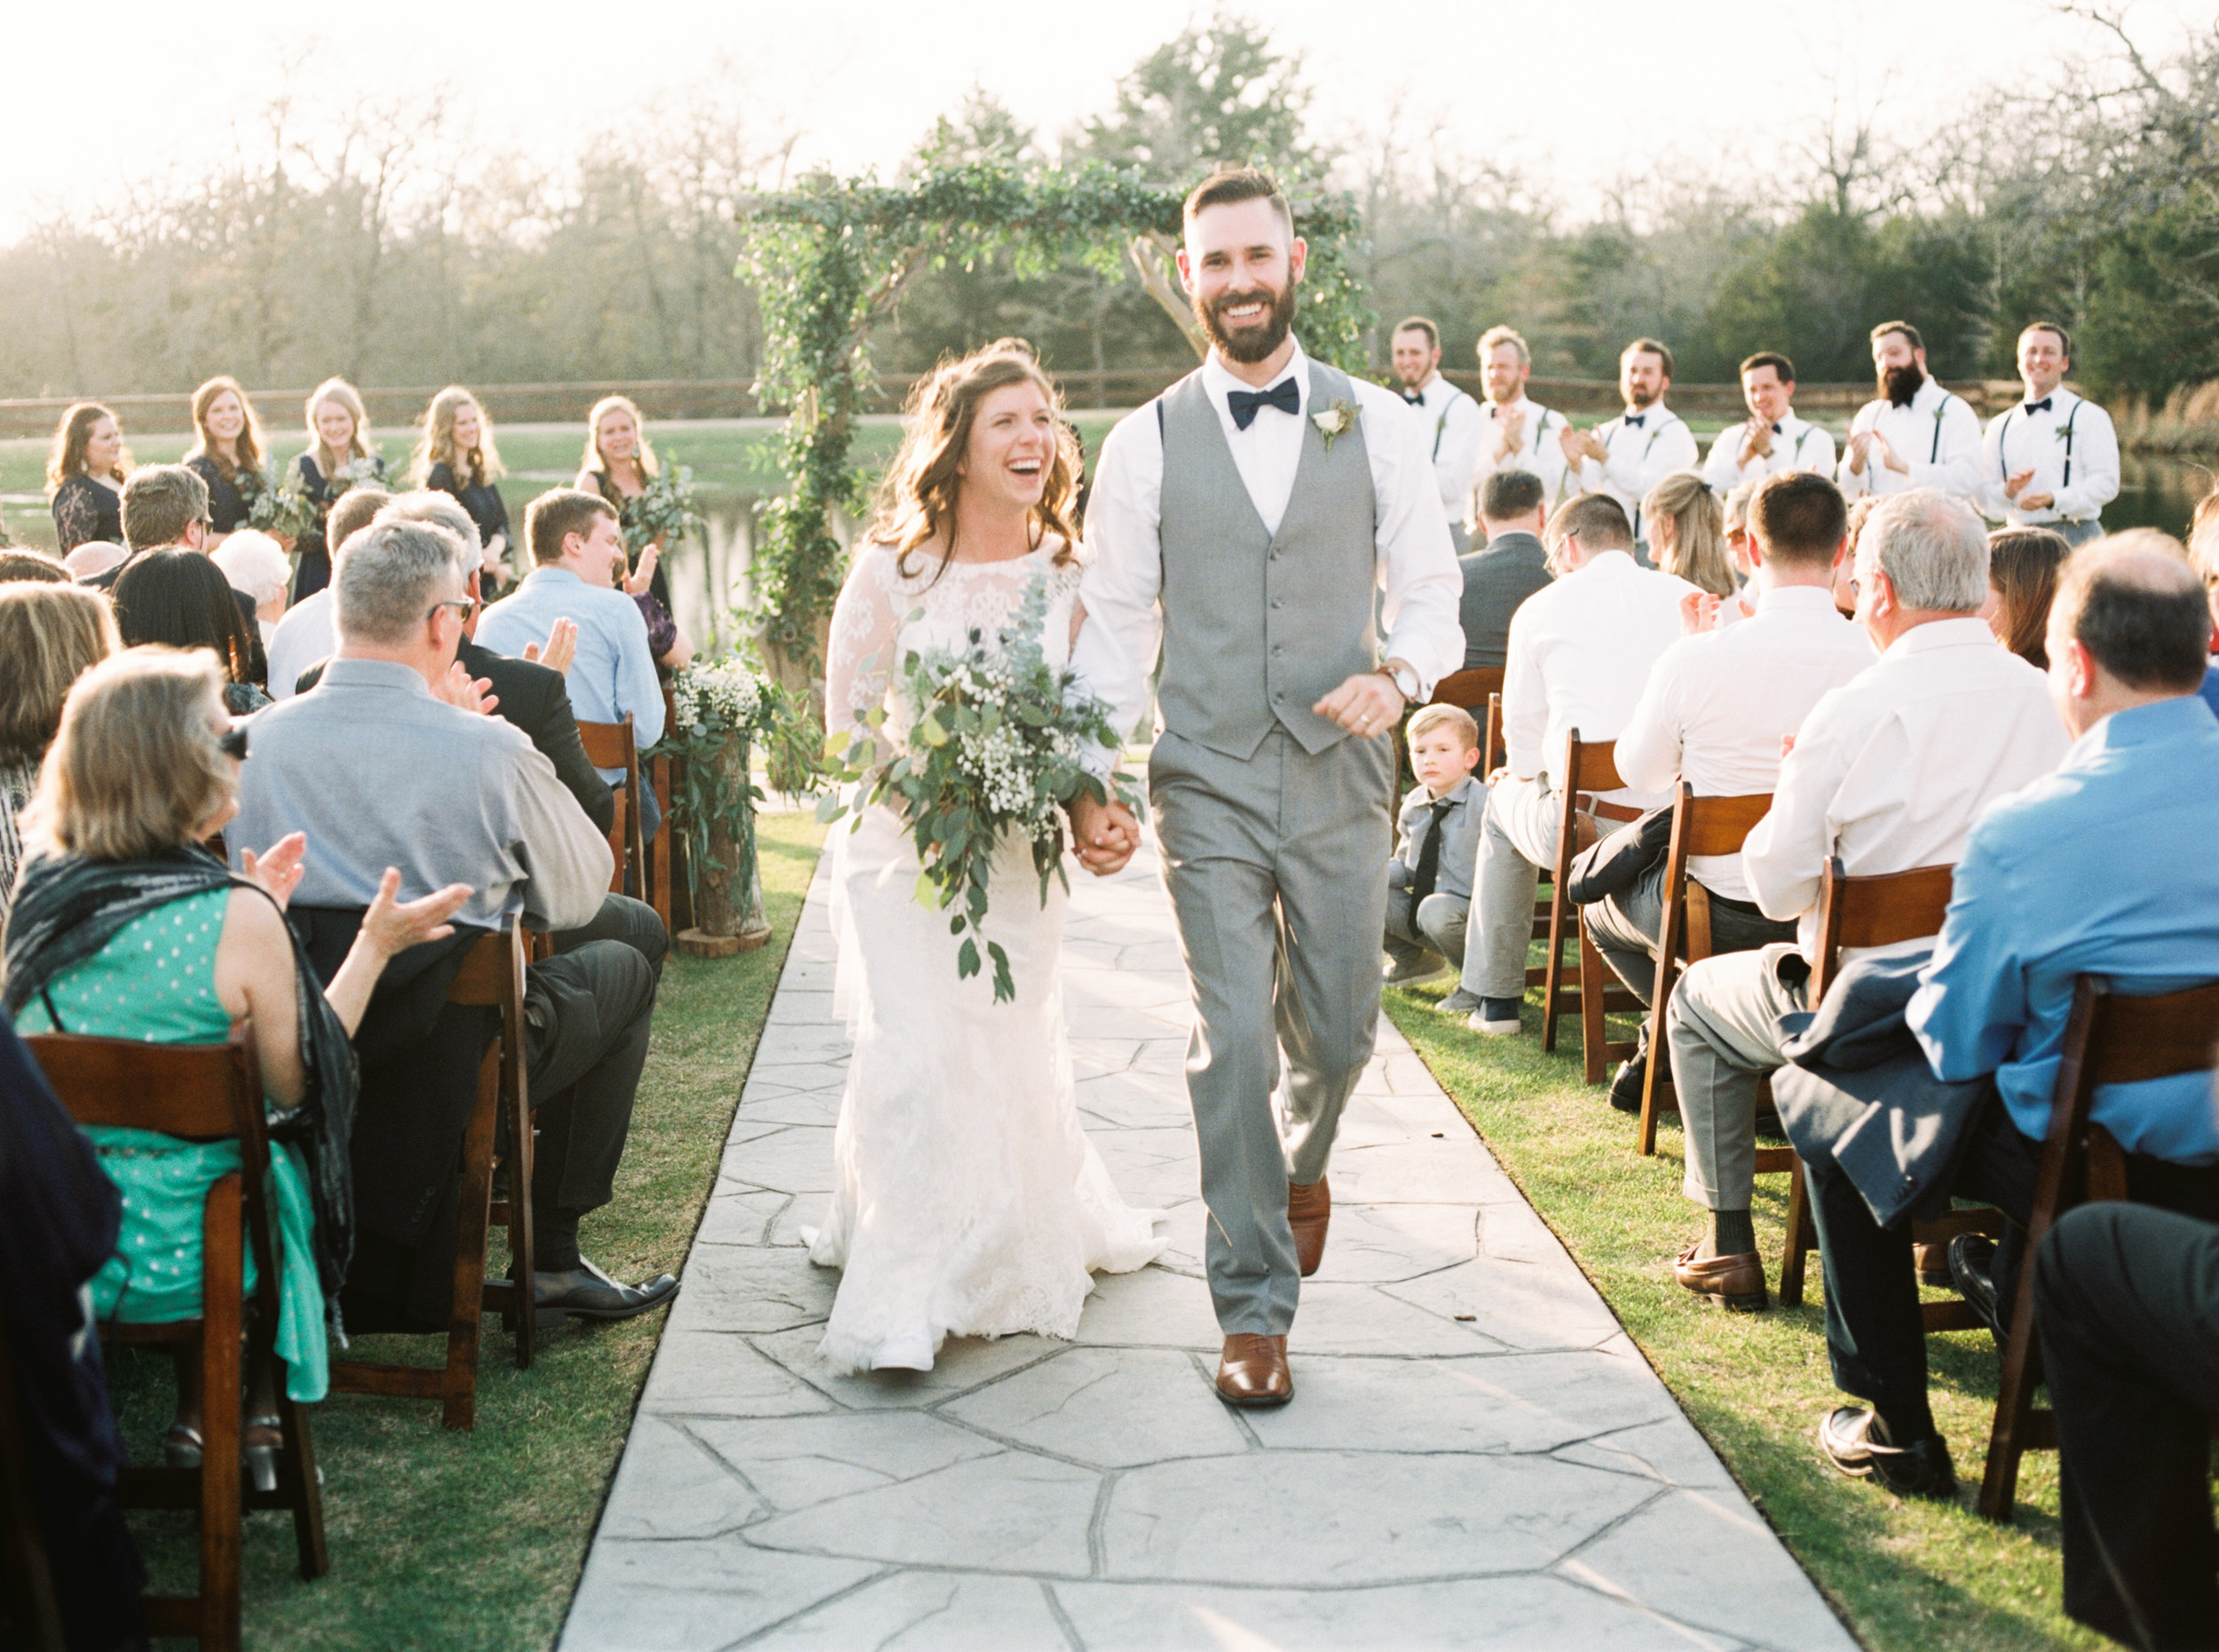 Looking for the perfect wedding venue? - Pull up a chair, a mason jar of sweet tea, and get to know us a little better.Peach Creek Ranch is the newest venue in College Station, Texas. We pride ourselves in providing a full-service wedding experience - without all of the stress.